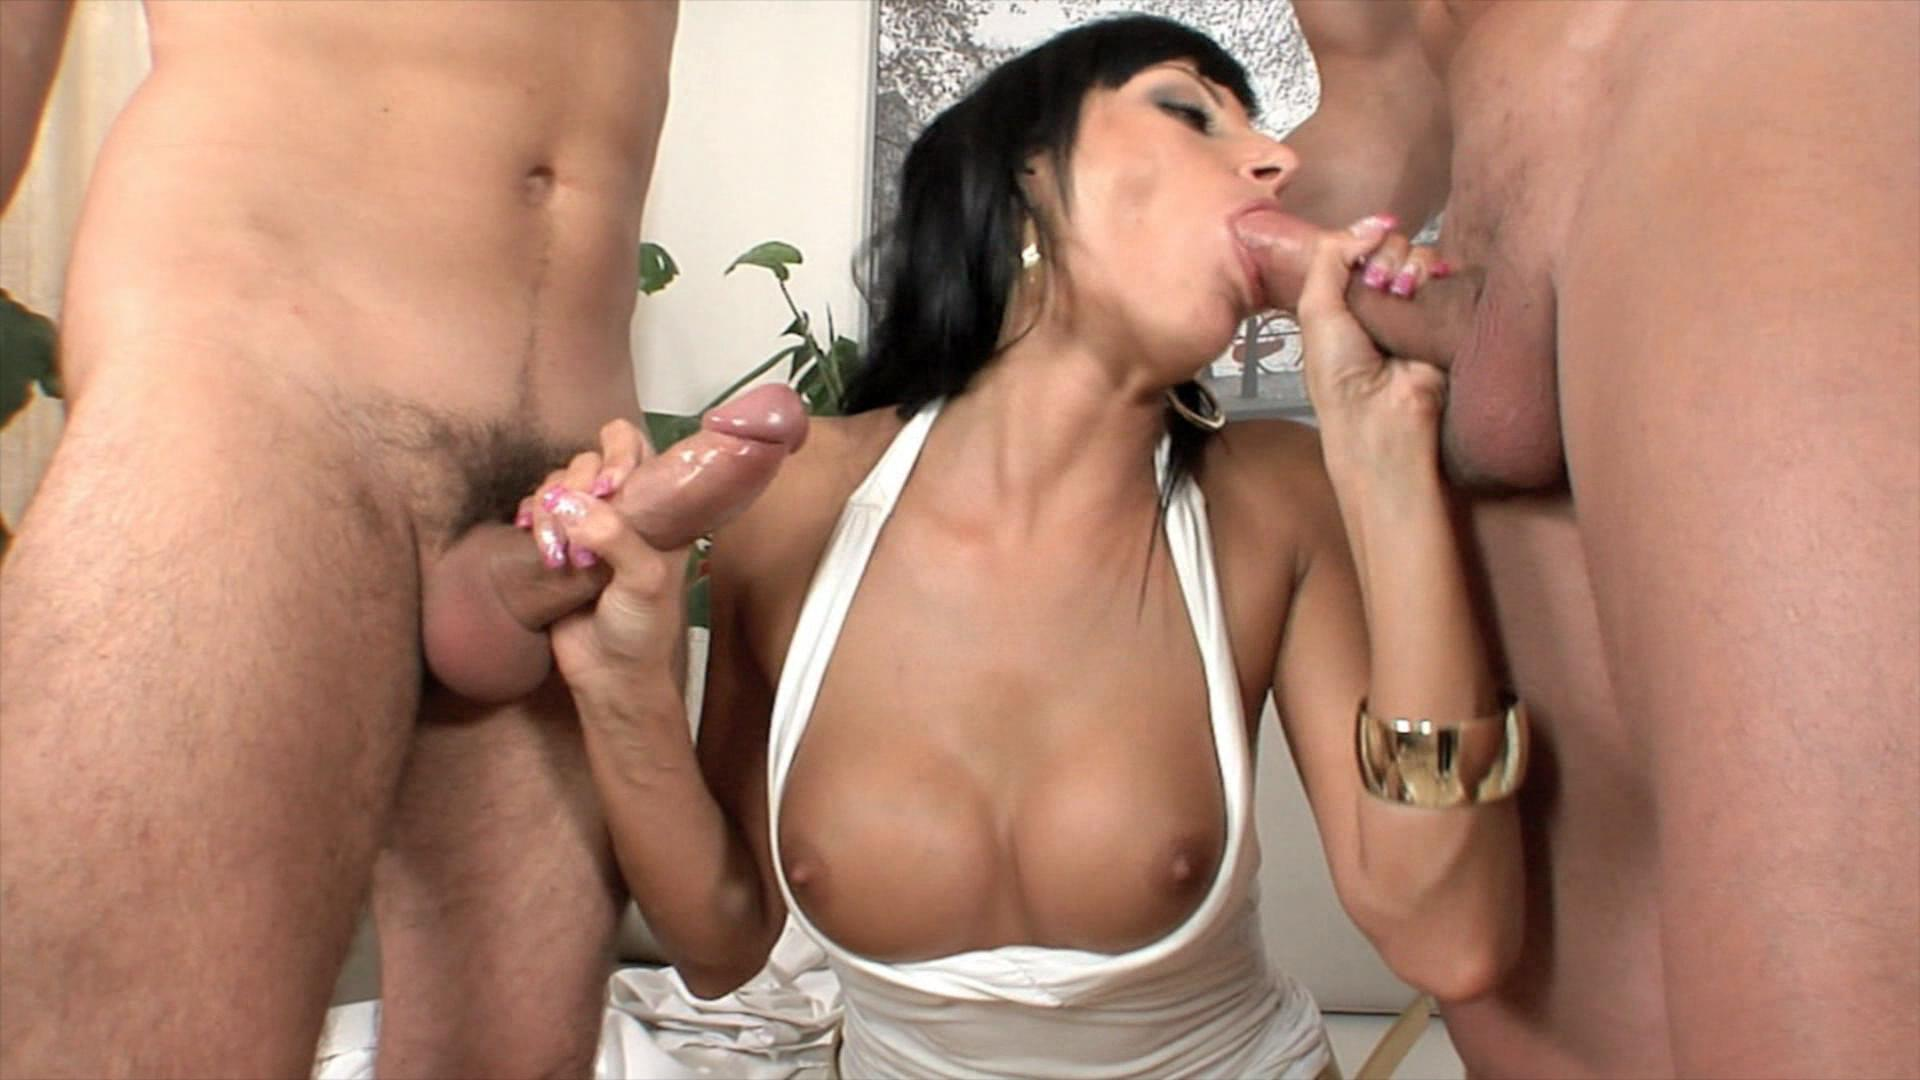 Bj gif blacked threesome